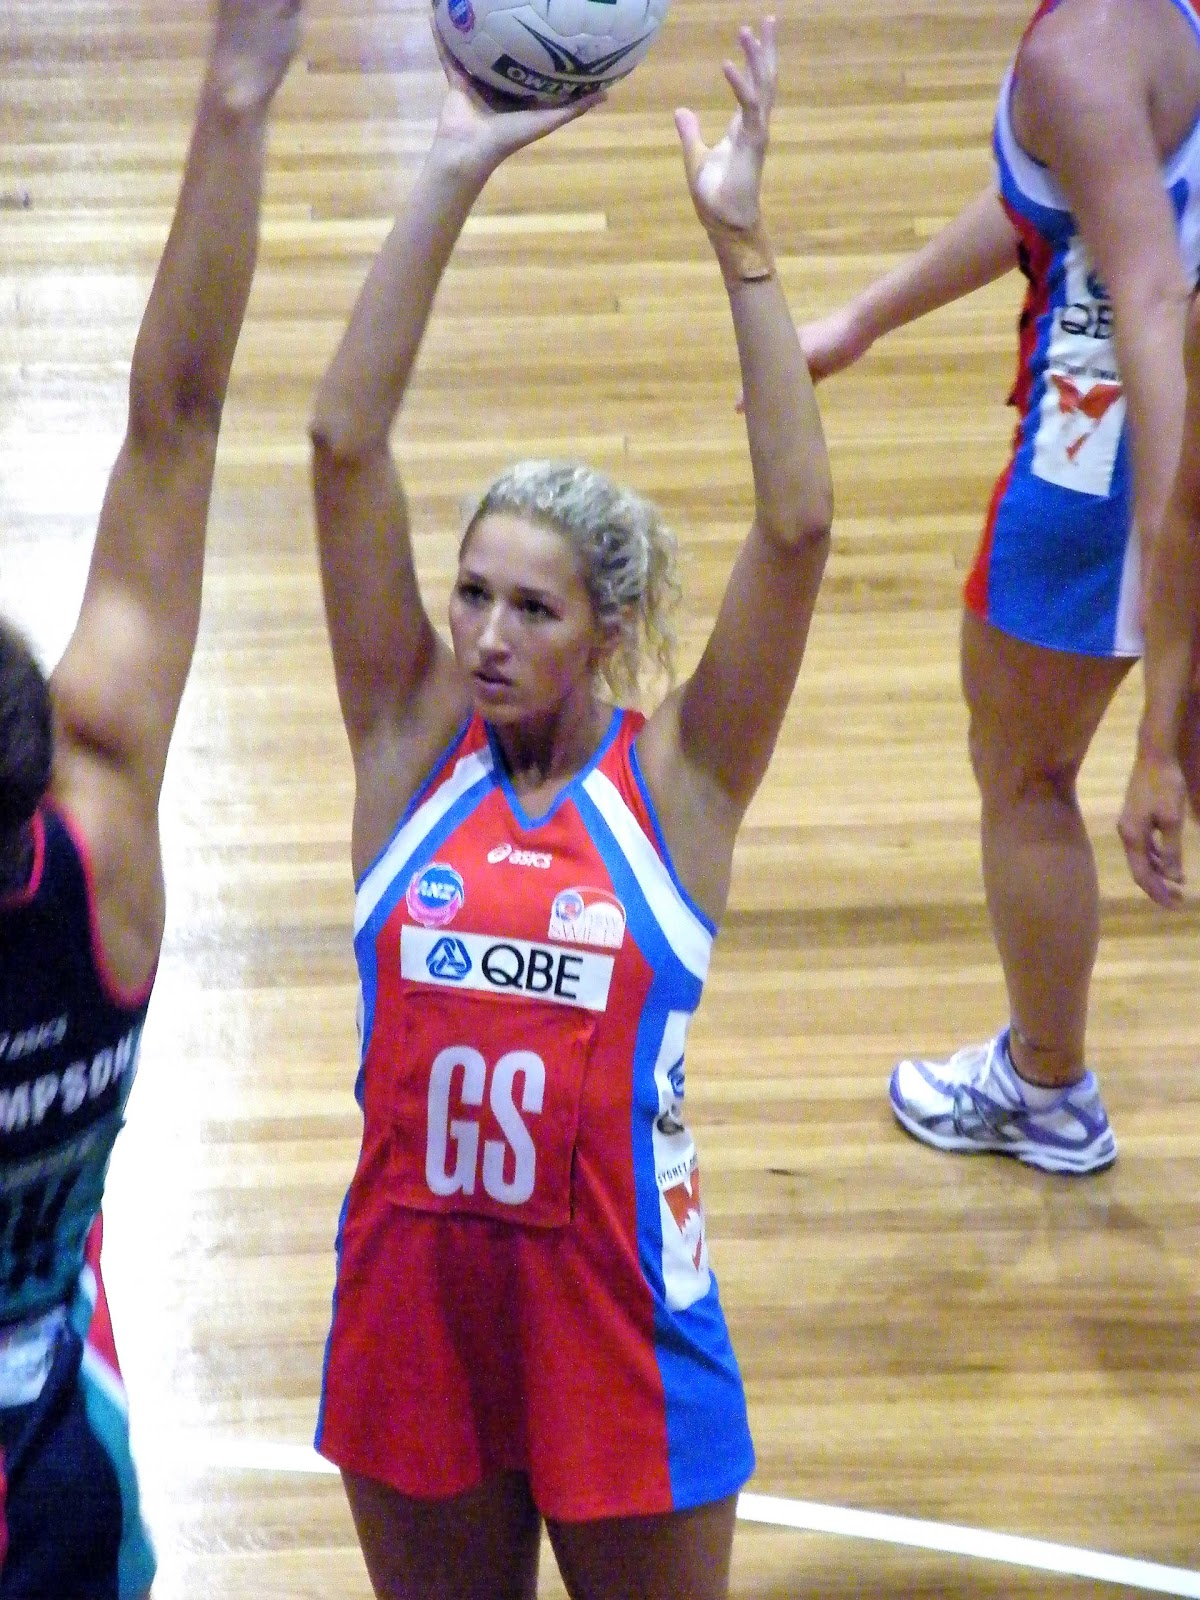 netball association football and goal shooter Talk:rules of netball (association football the basic aim of the game is for each team to move the ball into their scoring zone where either the goal shooter.